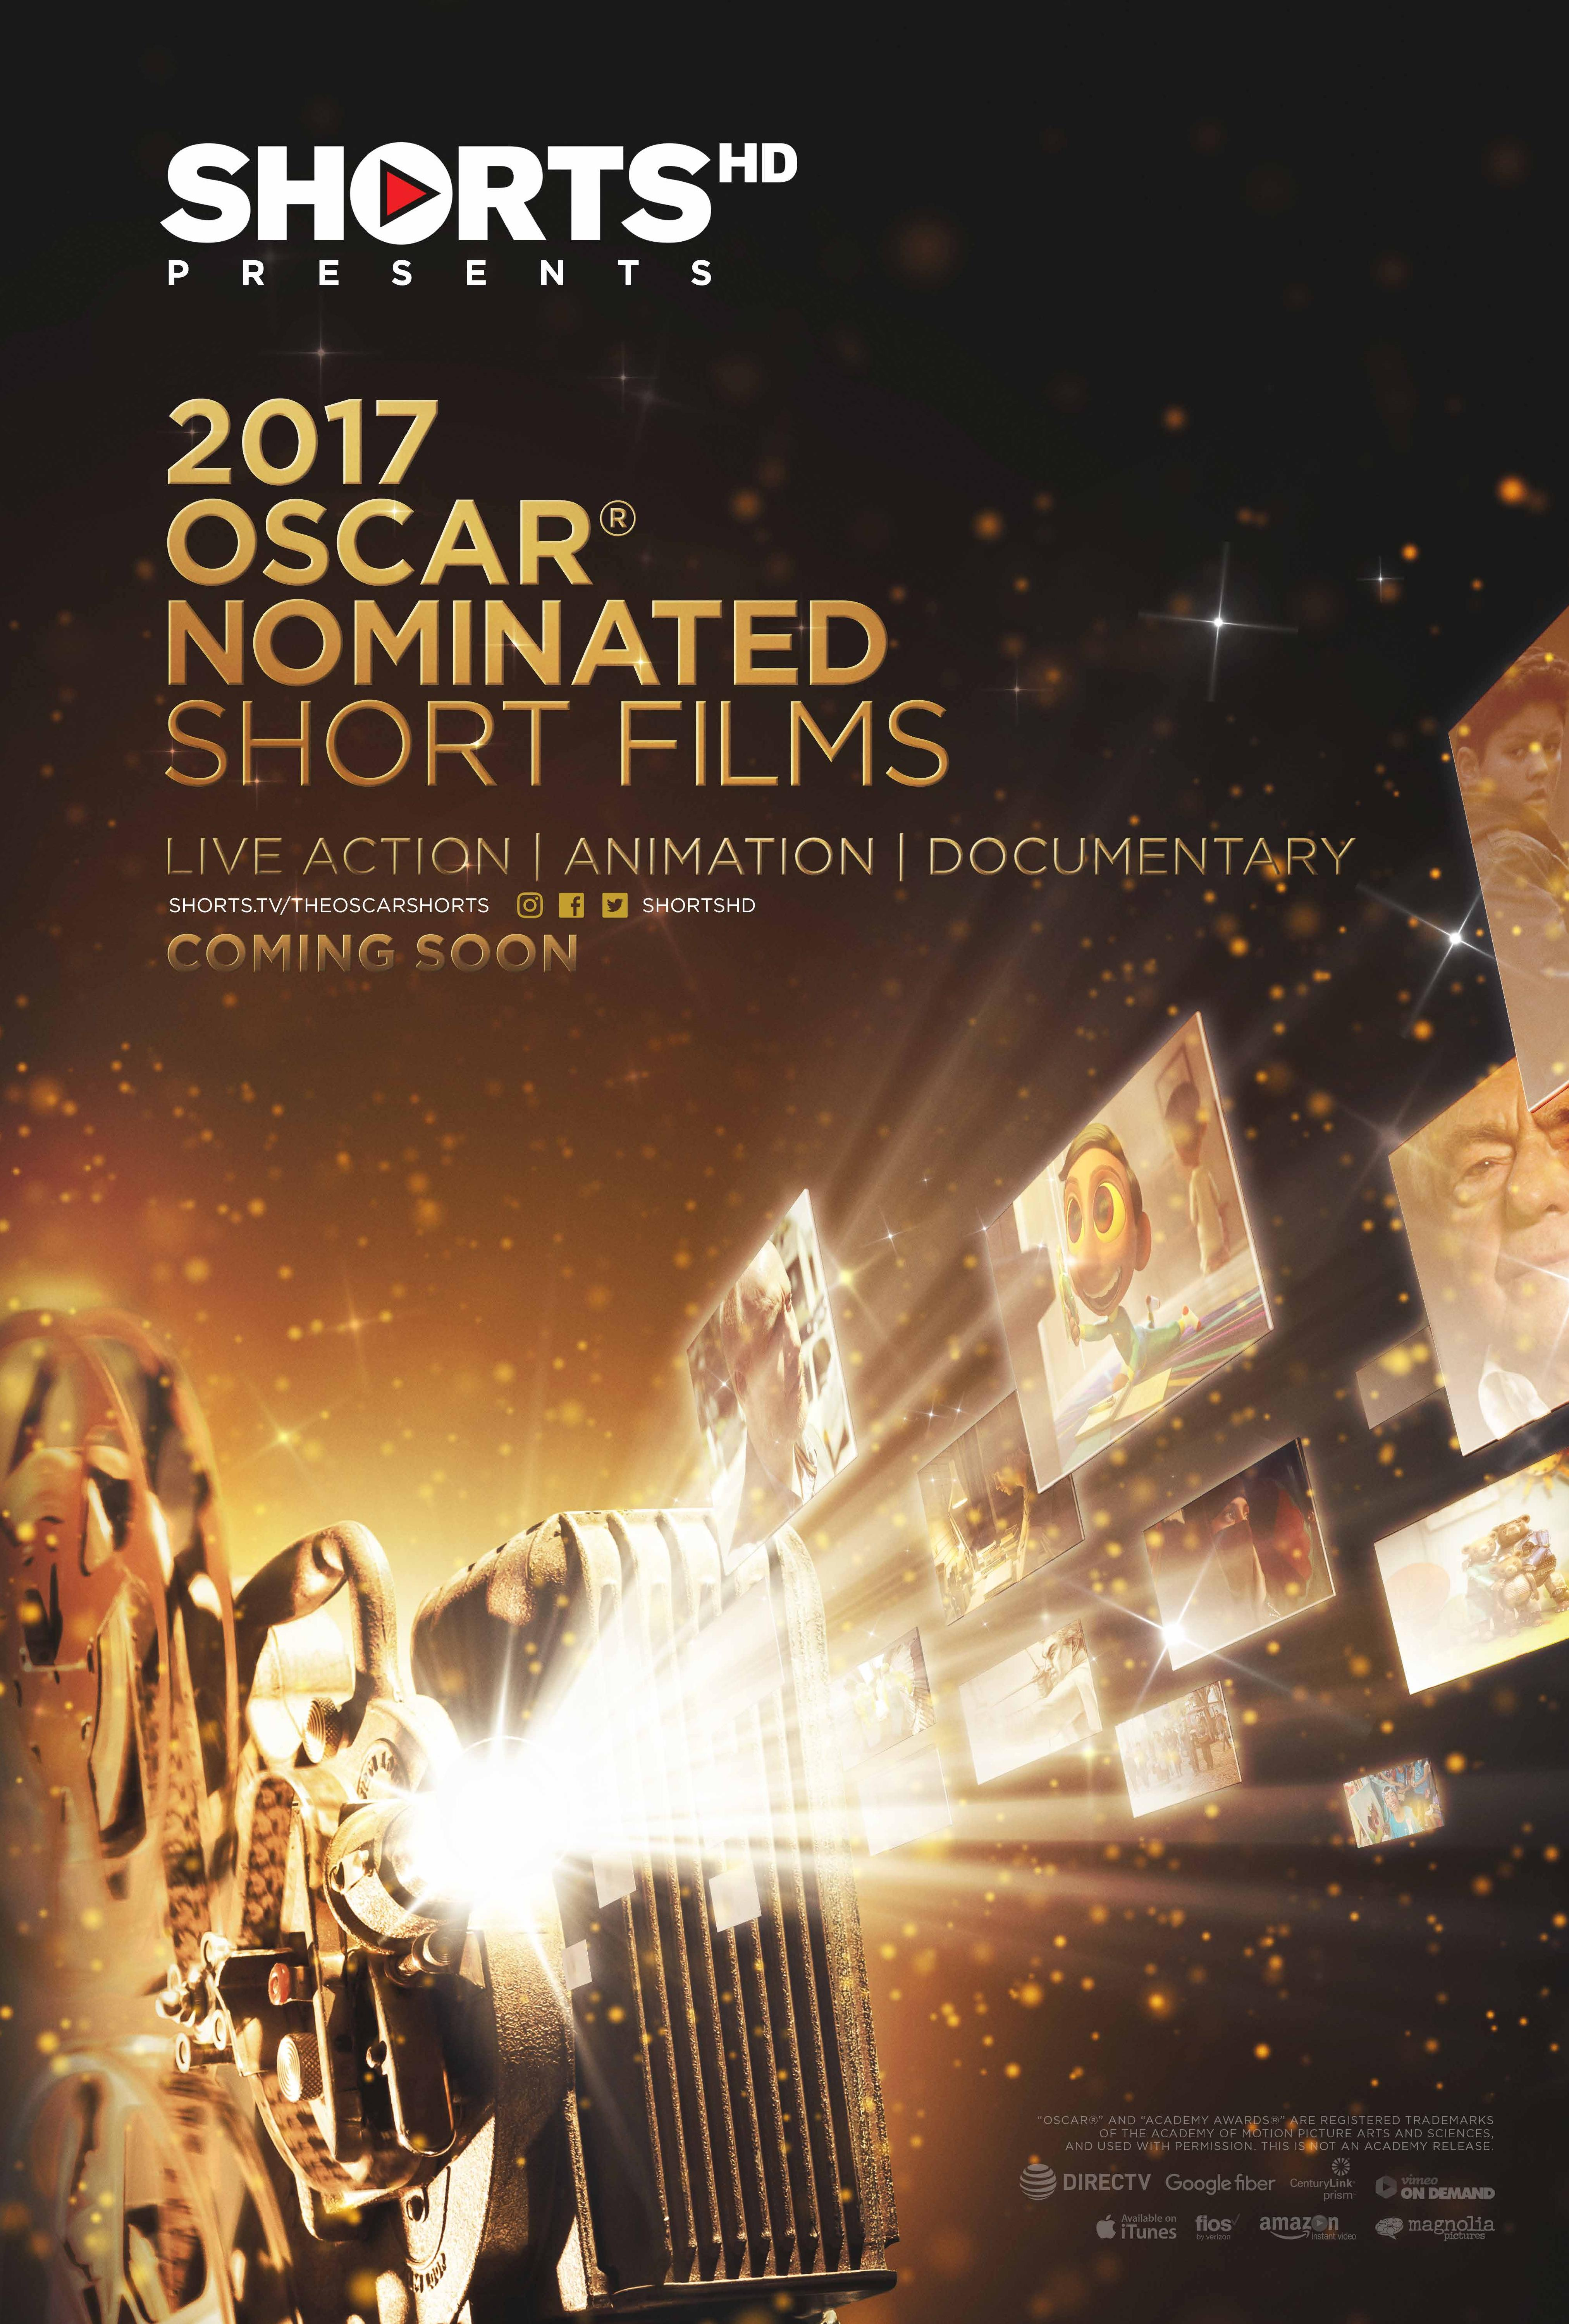 oscarshorts2017poster-page-001